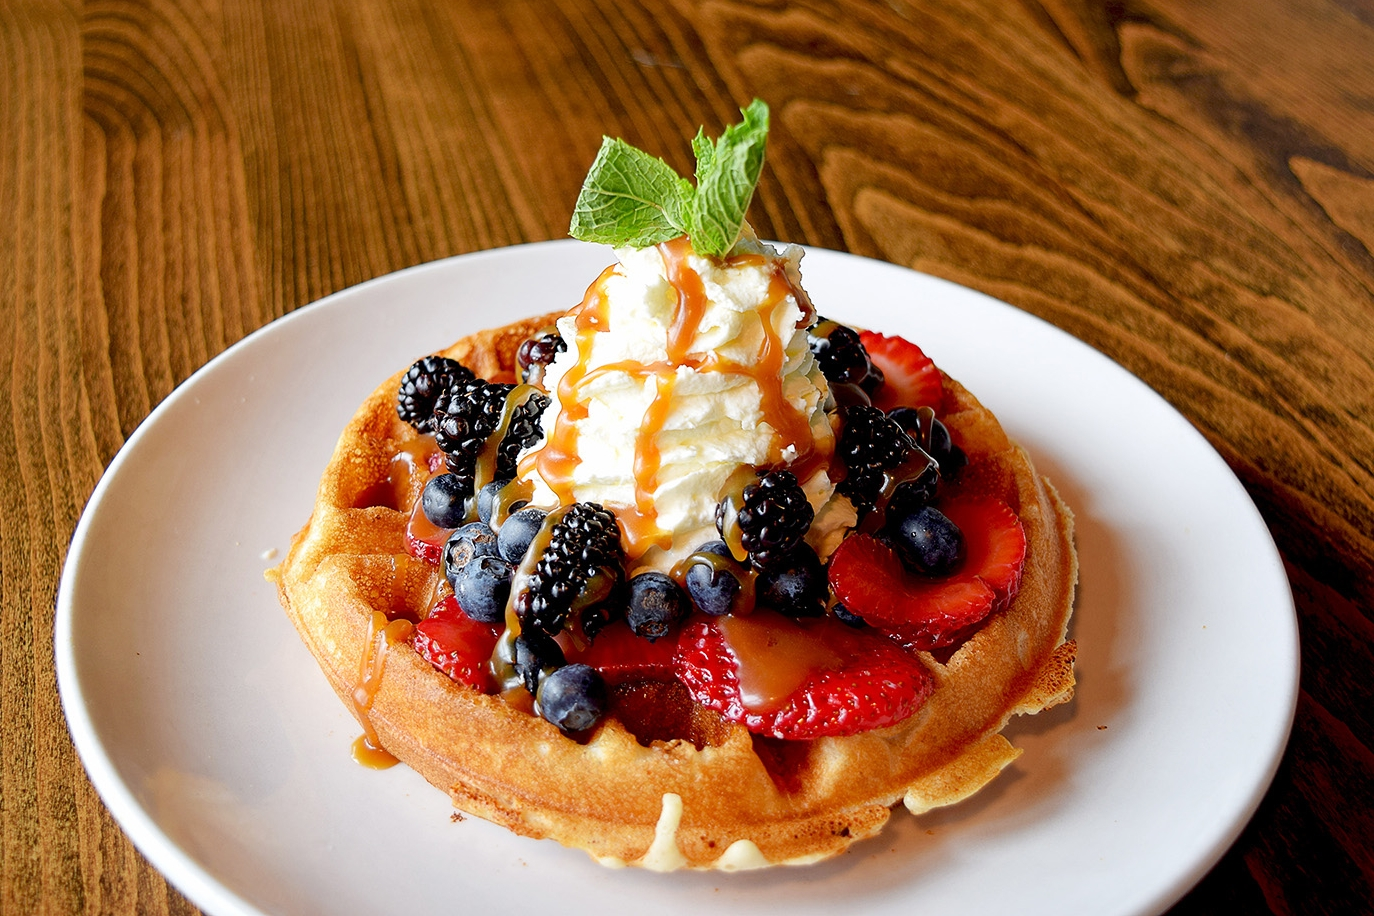 WEEKEND BRUNCH! - Every Saturday and Sunday from 10am - 2pm we will be featuring our weekend brunch menu. Try our Fresh Berry Waffle or Spanish Chilaquiles and chase it down with a $5 Mimosa or Bloody Mary! Let us help make your weekend a bit more exciting.